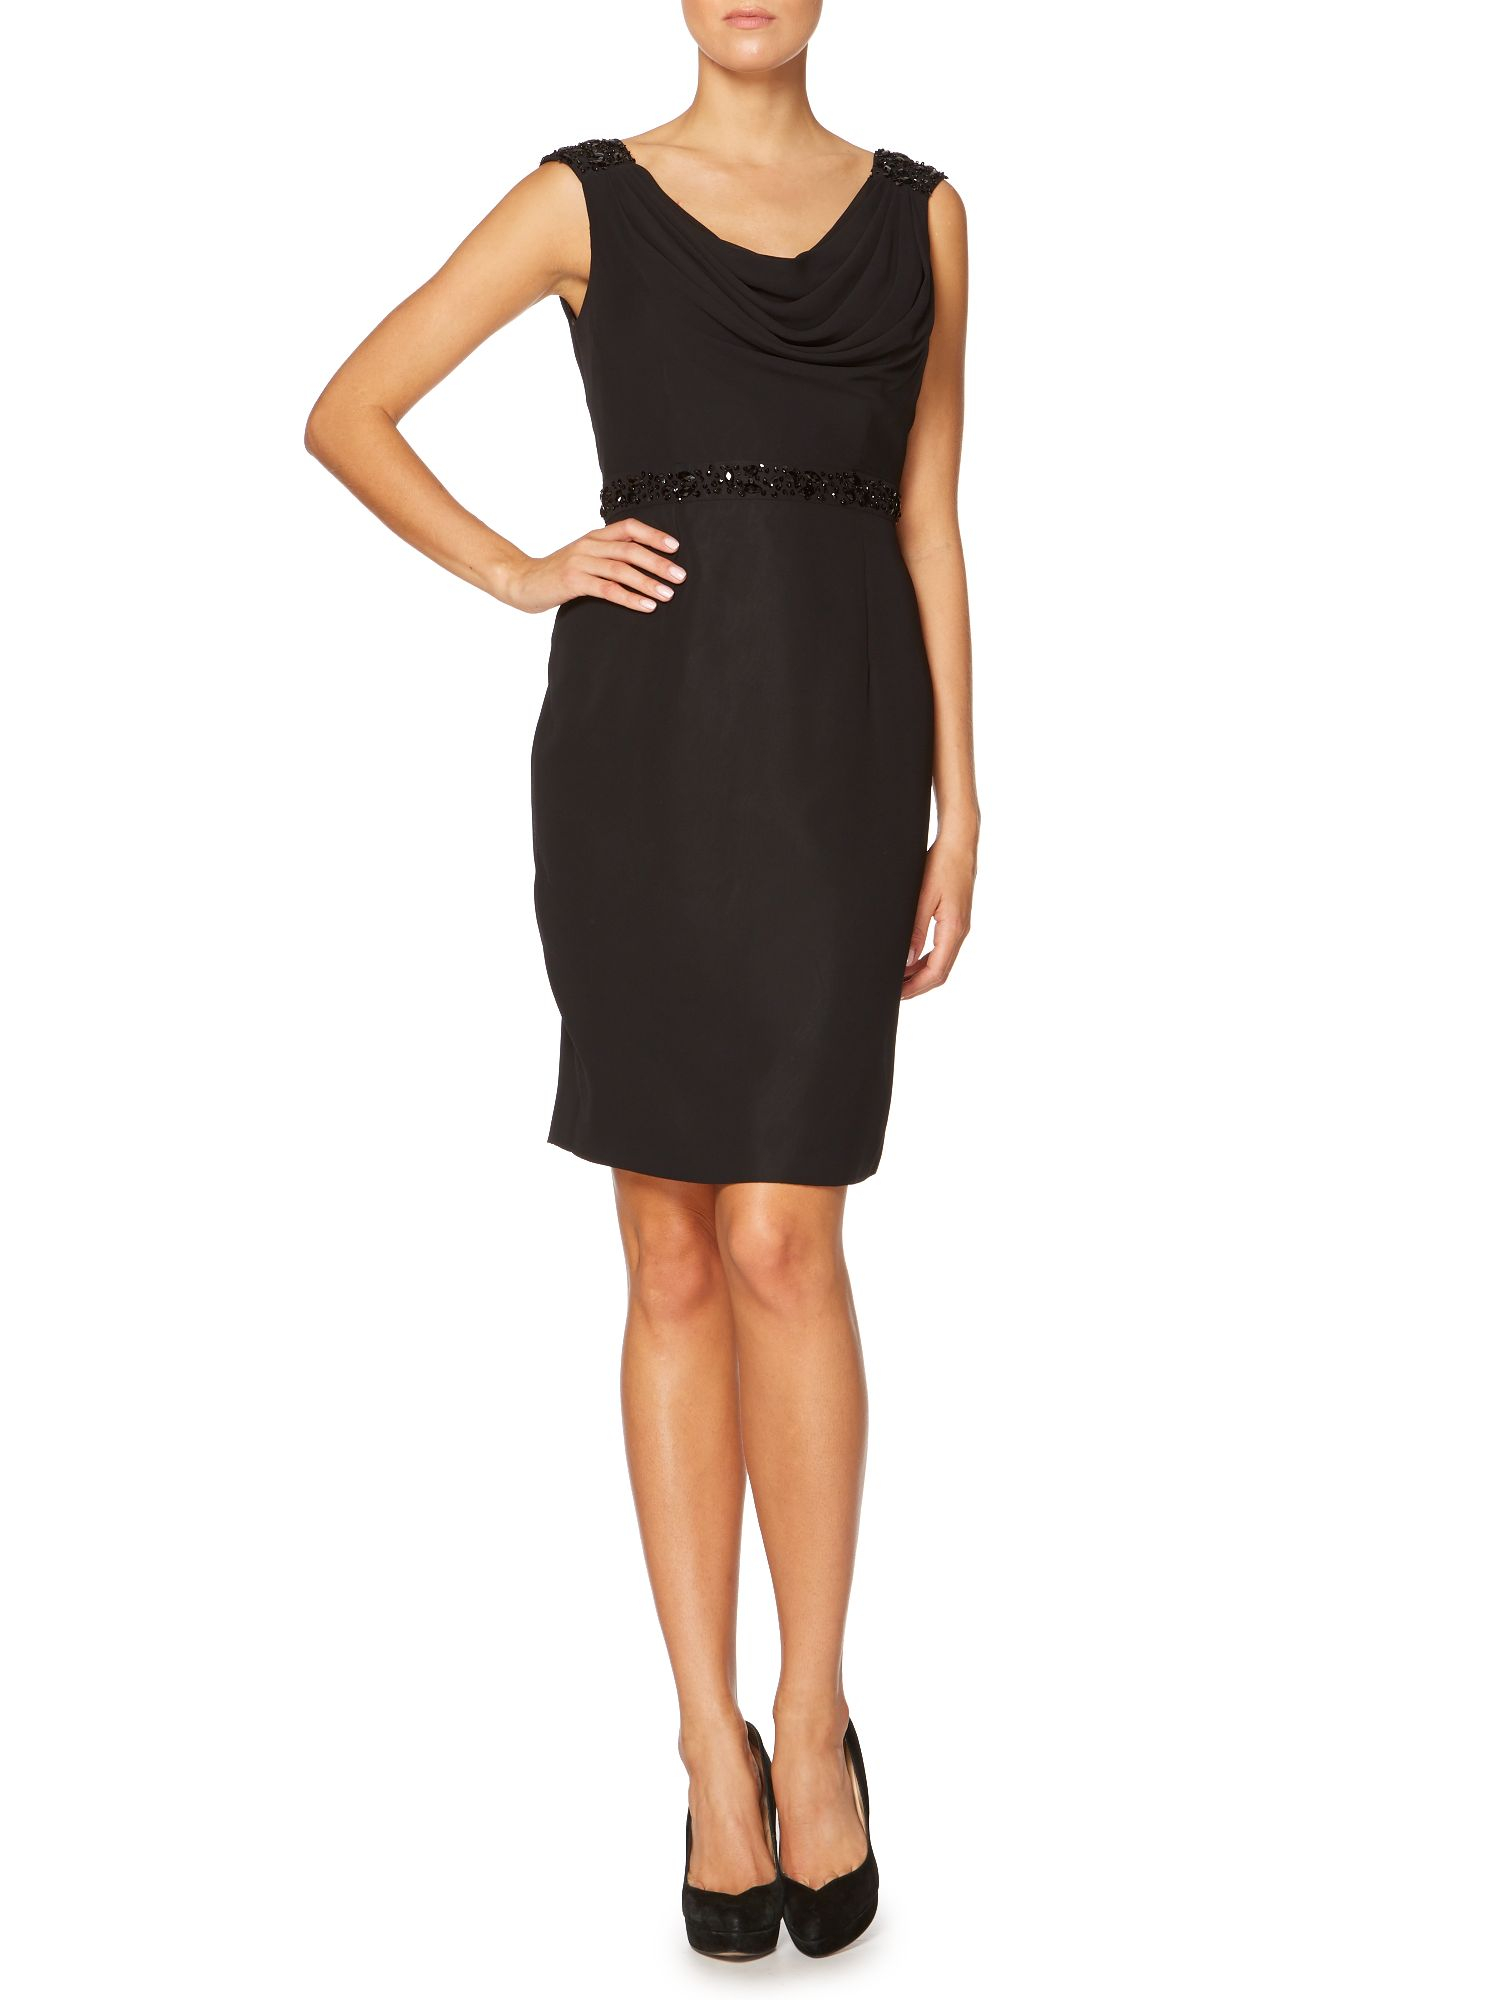 Shubette Cowl Neck Cocktail Dress With Beaded Waist In